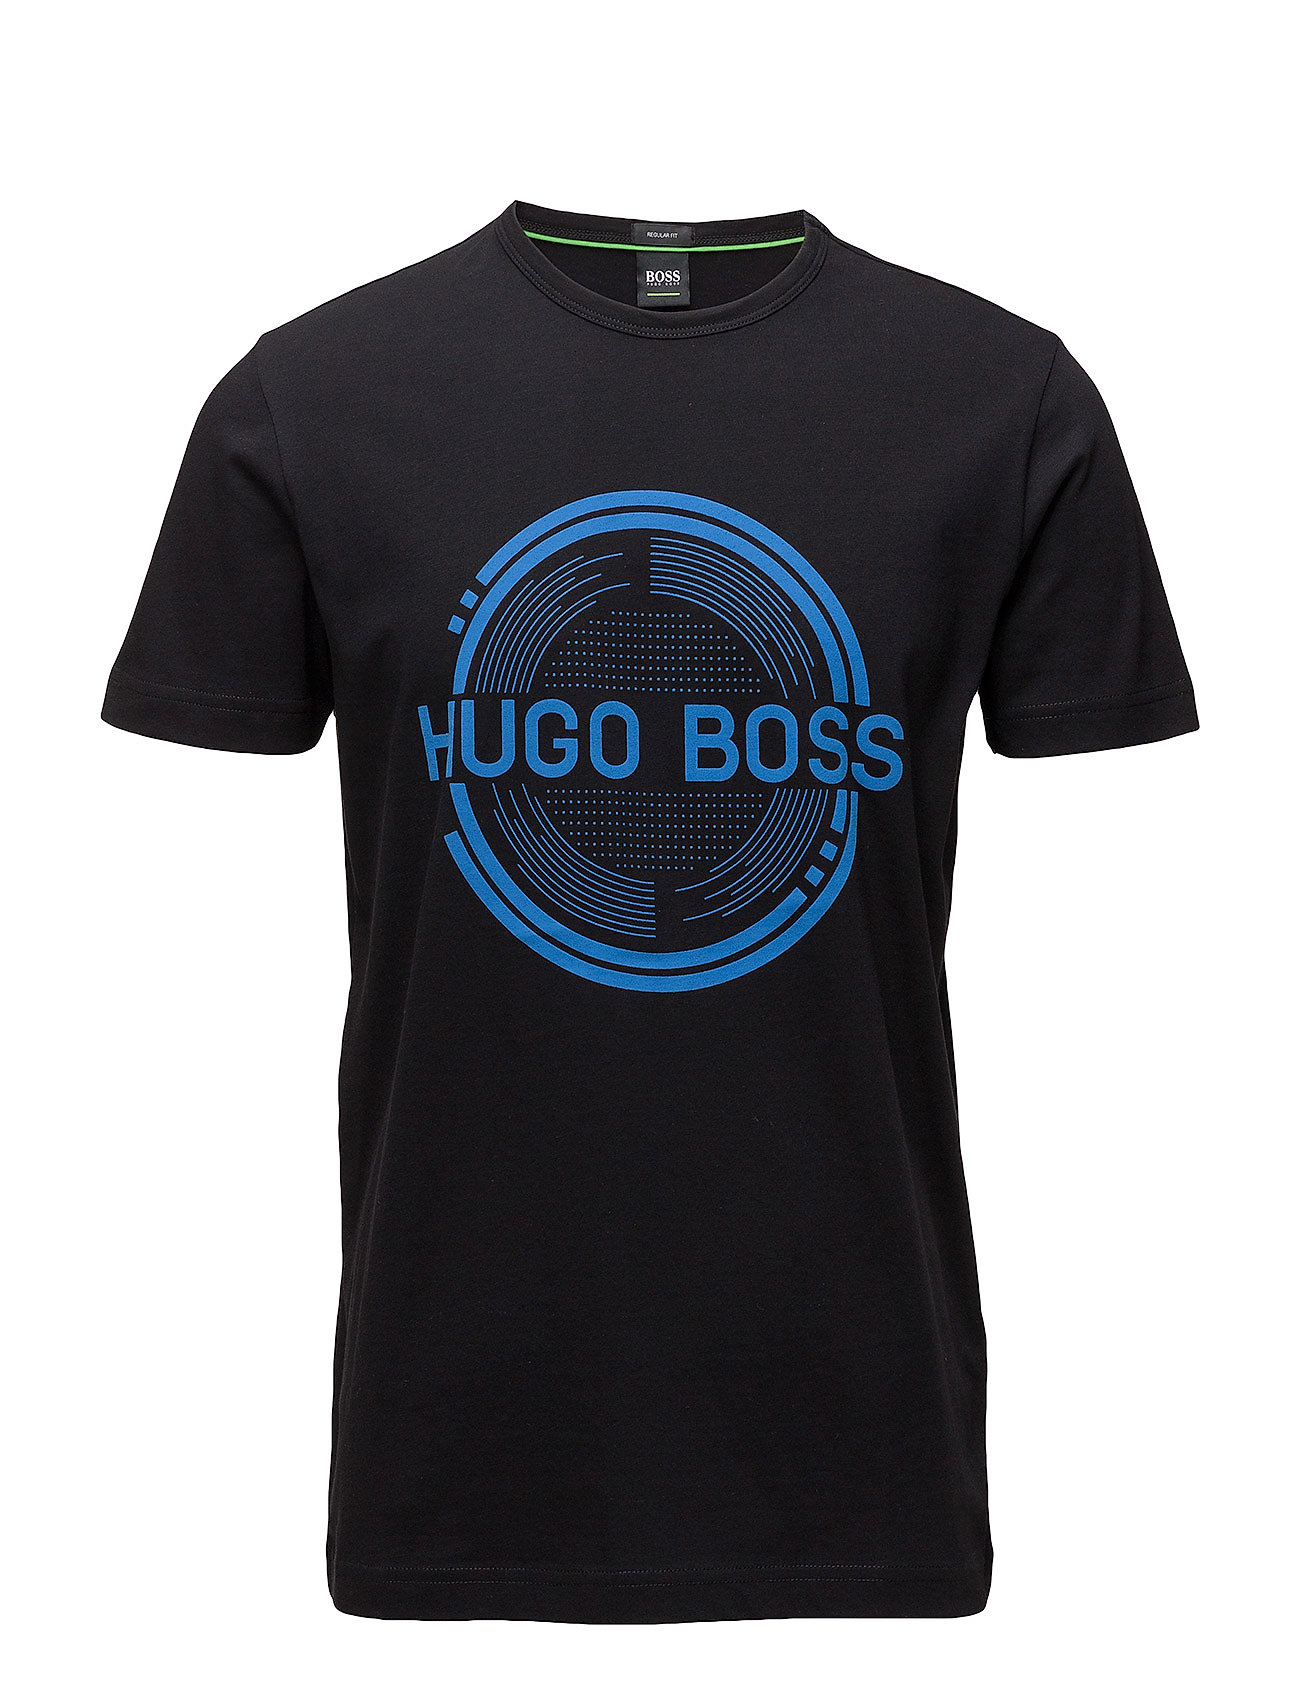 Tee 1 - Boss Athleisure Wear